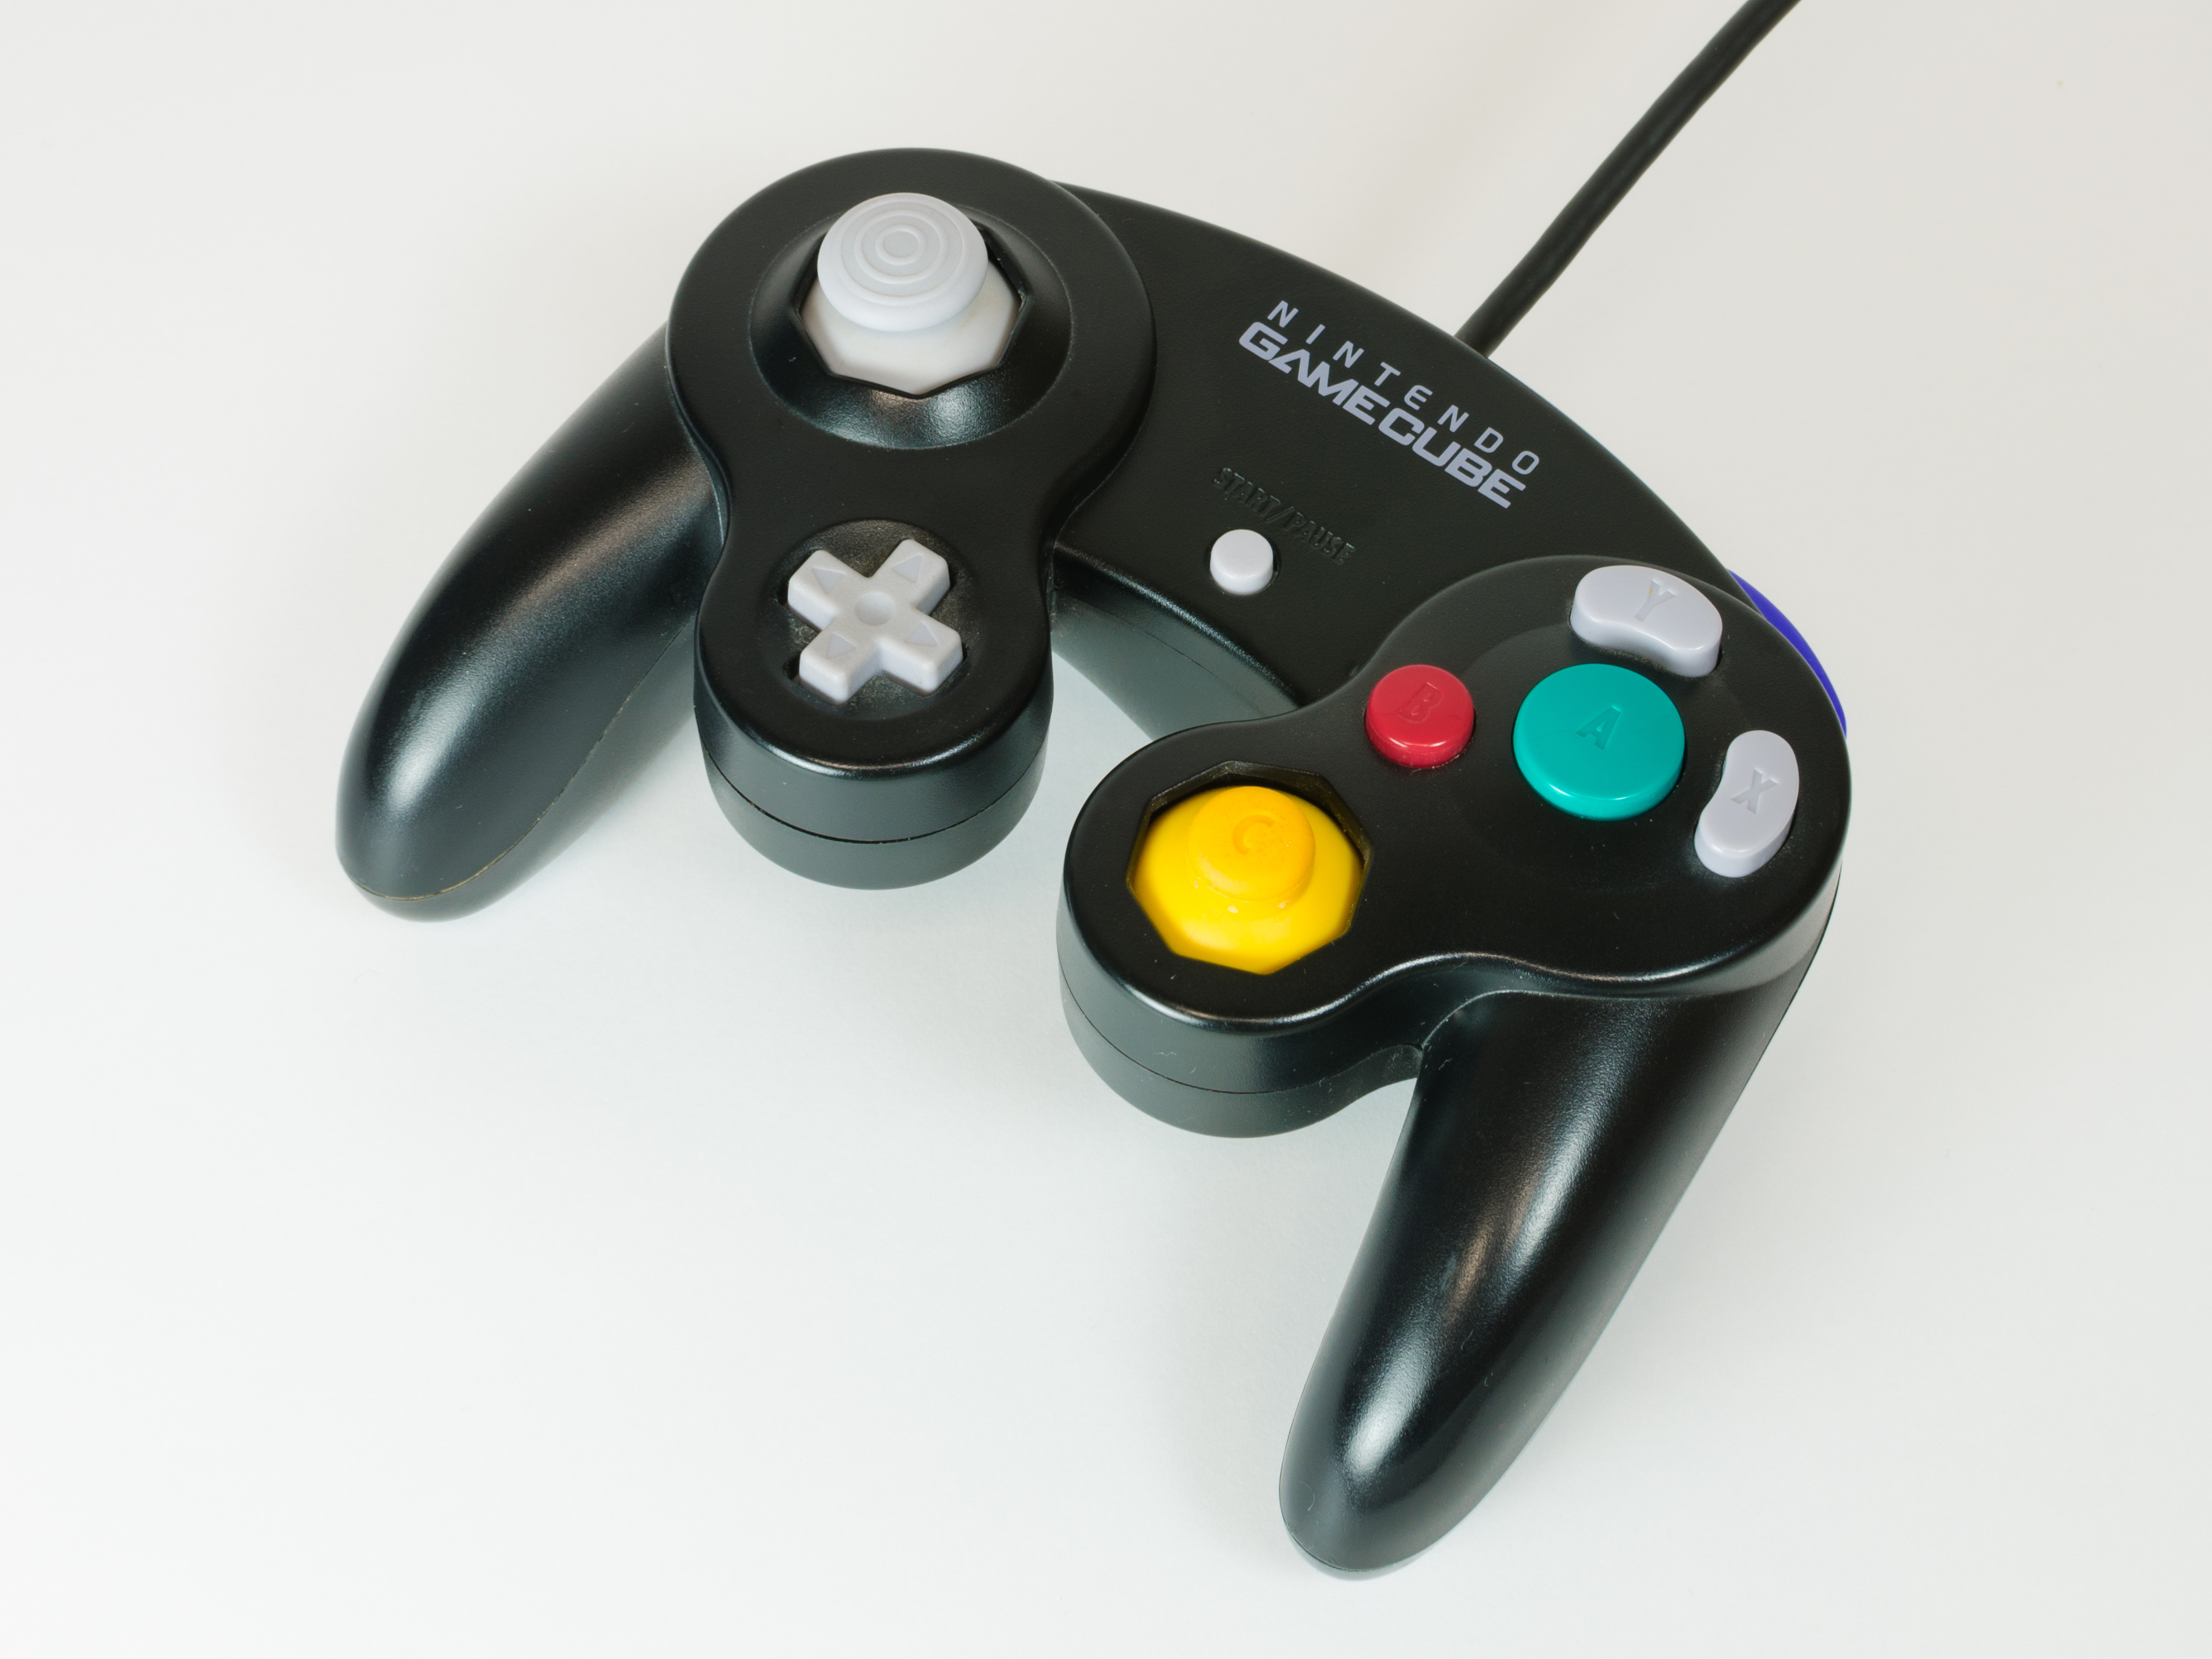 ... is going to release a GameCube controller for Wii U - Shinigaming